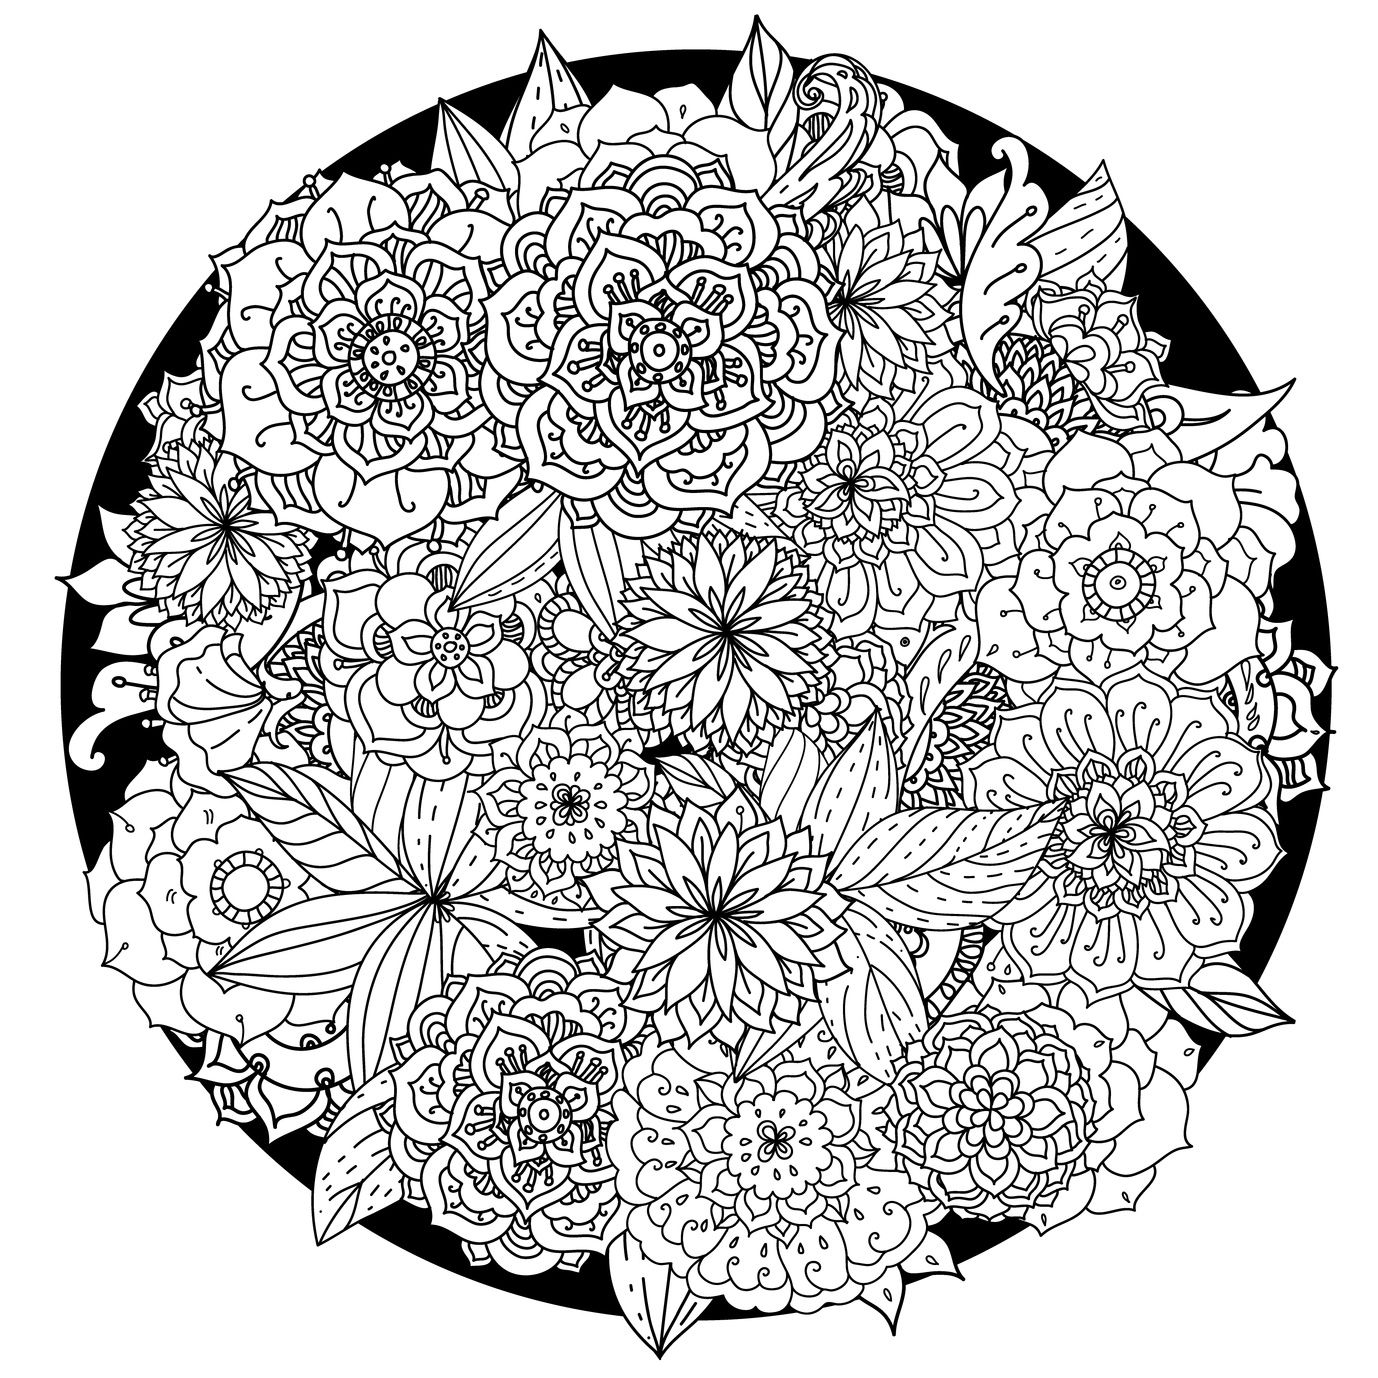 free mandala coloring pages for adults free printable mandala coloring pages for adults at mandala coloring pages adults for free